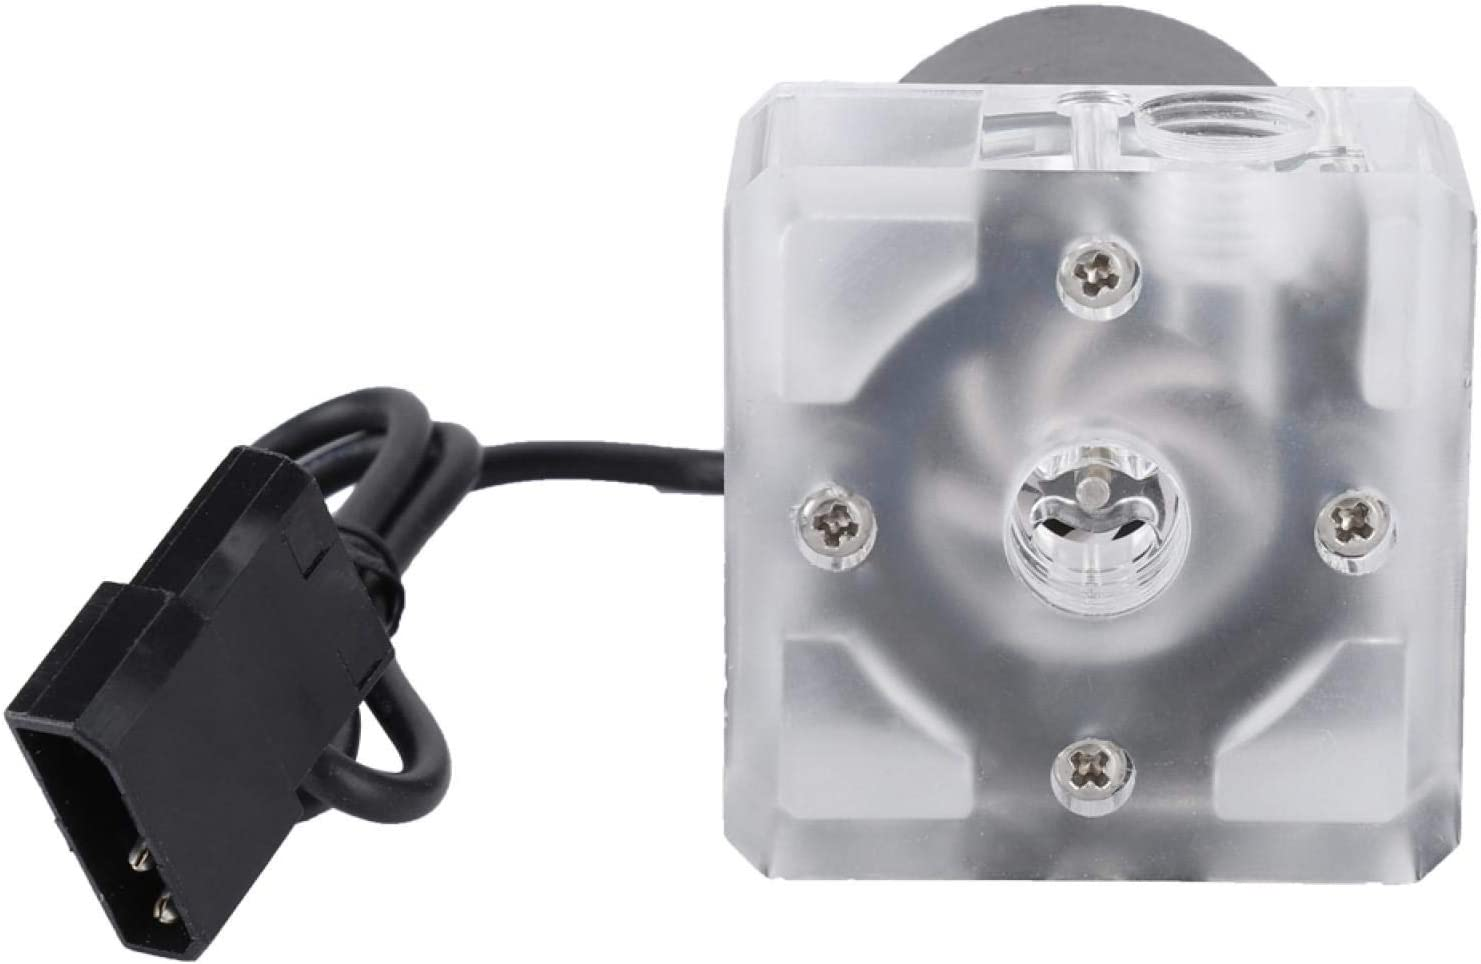 CHENQIAN 800L High Price reduction Flow G1 4 Water Cool Easy-to-use PC CPU Pump Computer for